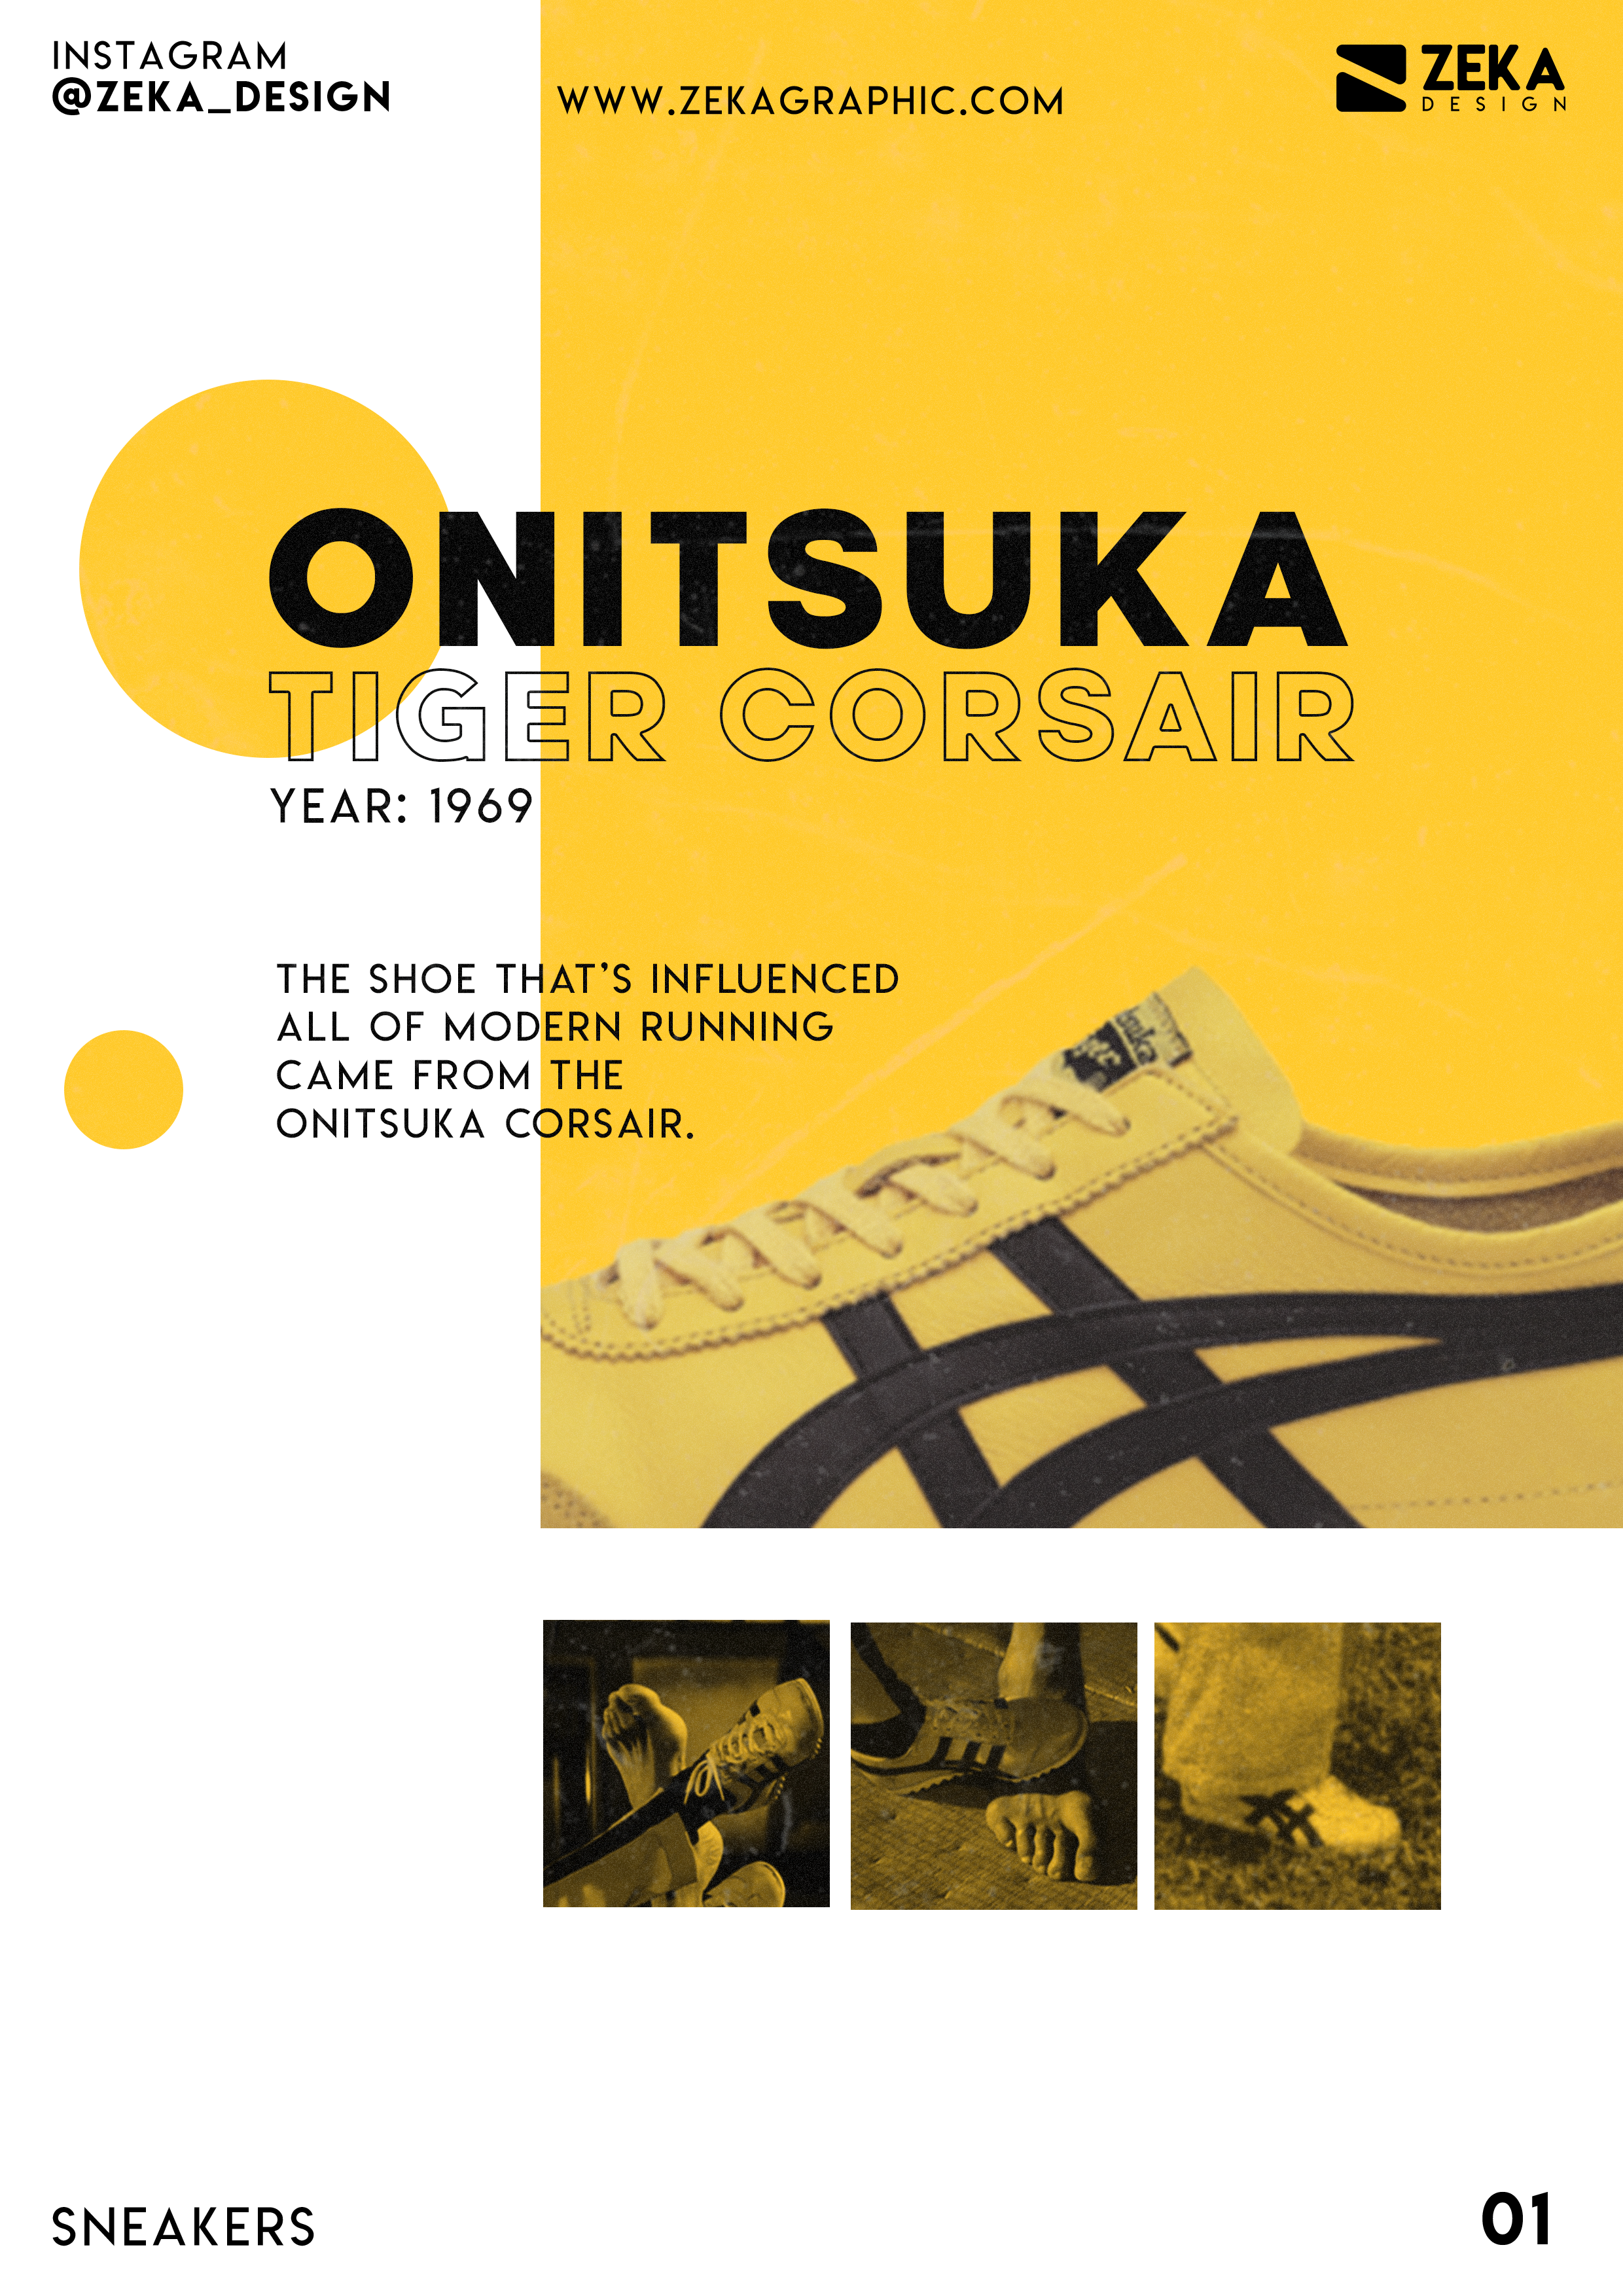 Sneakers Modern Graphic Design Poster Onitsuka Tiger Corsair Poster Art By Zeka In 2021 Stationery Design Inspiration Minimalist Graphic Design Modern Graphic Design